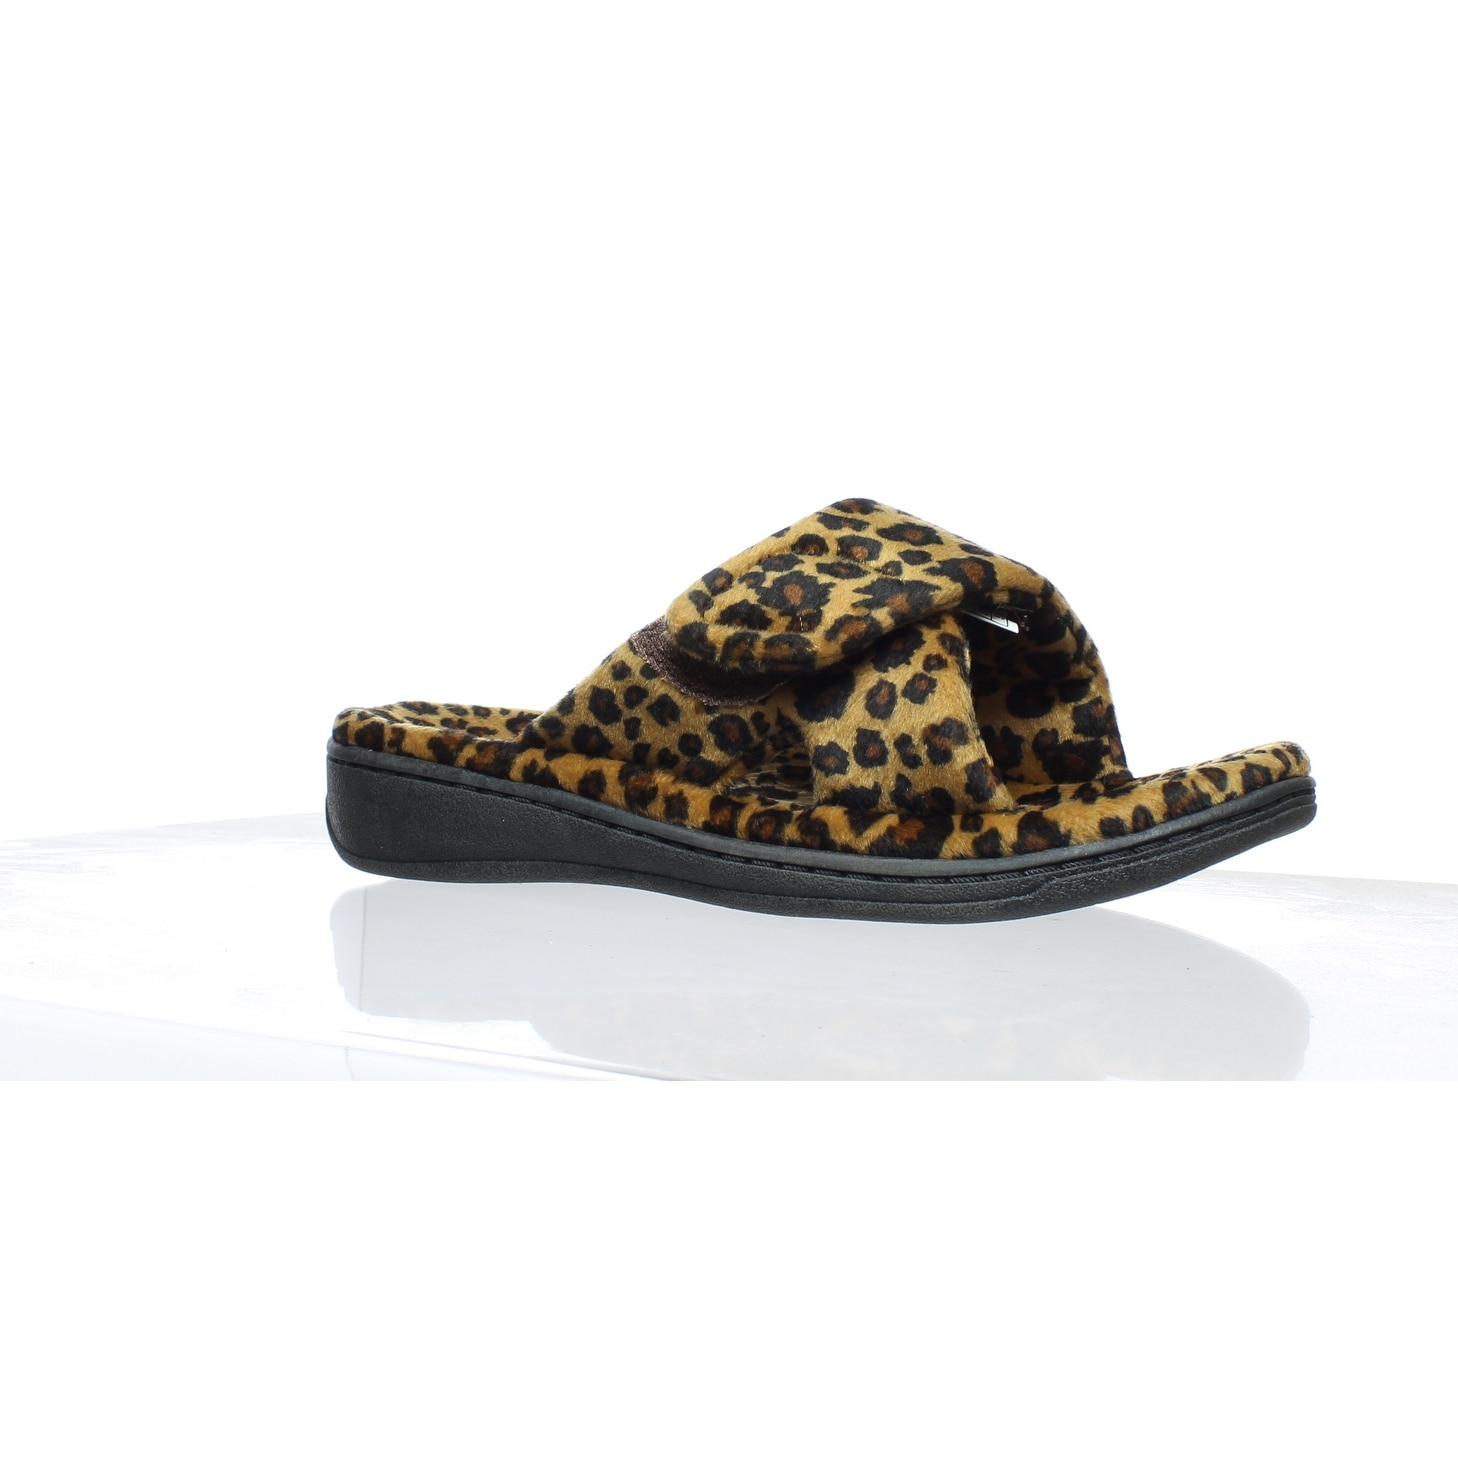 6c39a7566fdc Shop Vionic Womens Indulge Relax Tan Leopard Mule Slippers Size 5 ...